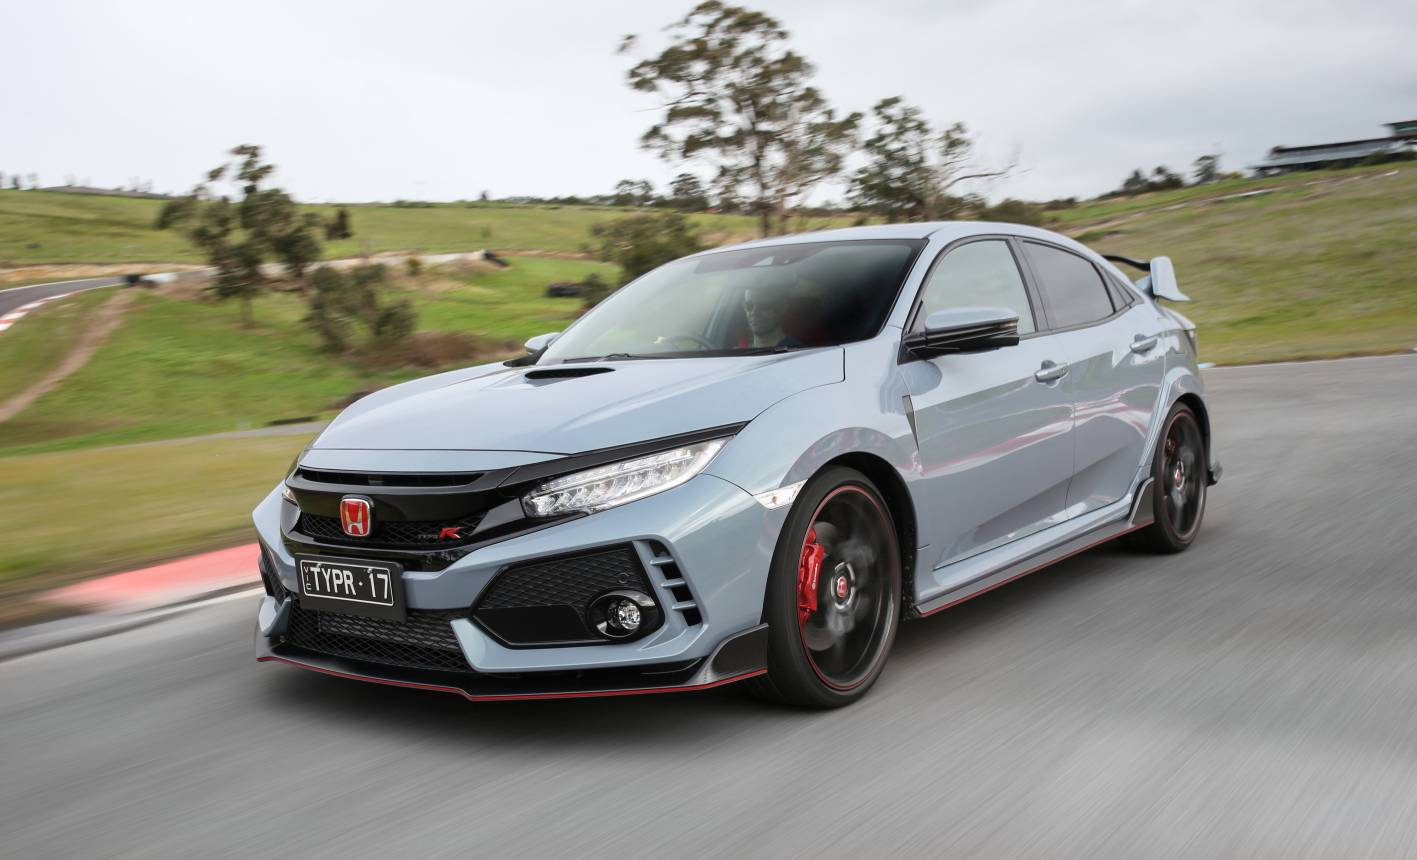 Honda Civic Sport 2017 >> 2018 Honda Civic Type R: Technical Overview - ForceGT.com